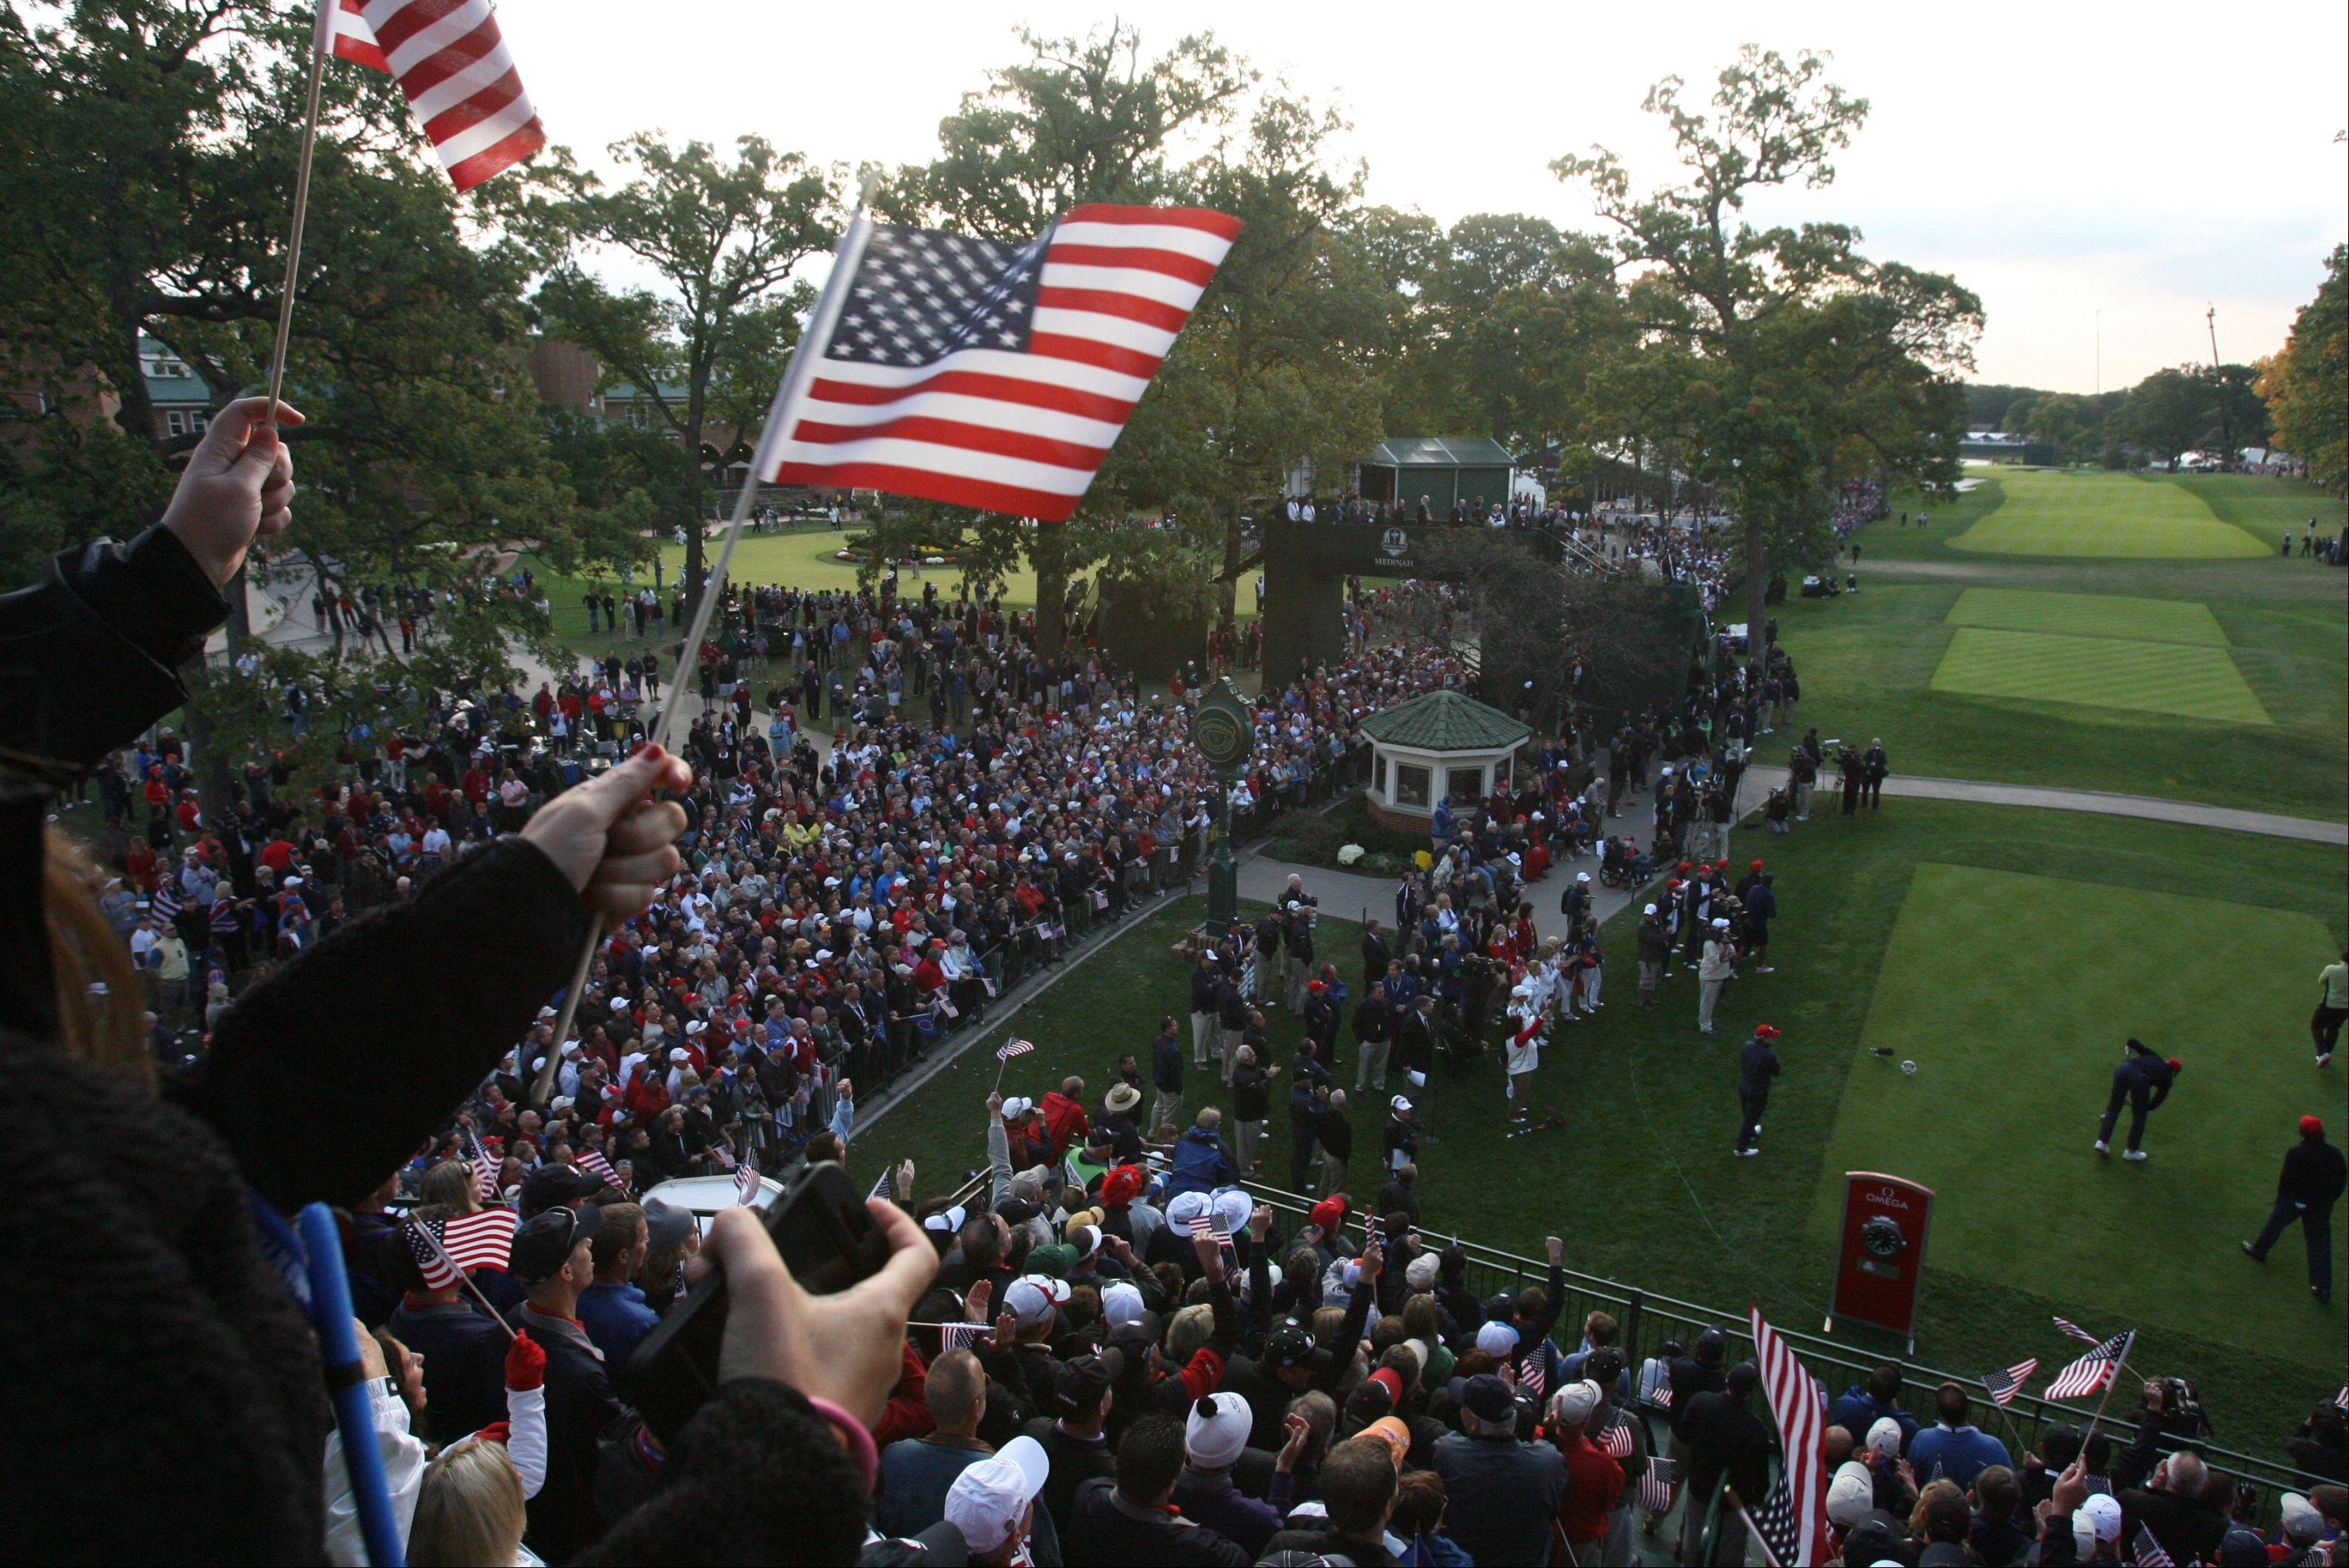 Team USA fans were out in full force on the first tee Friday morning as Ryder Cup competition got under way at Medinah Country Club.